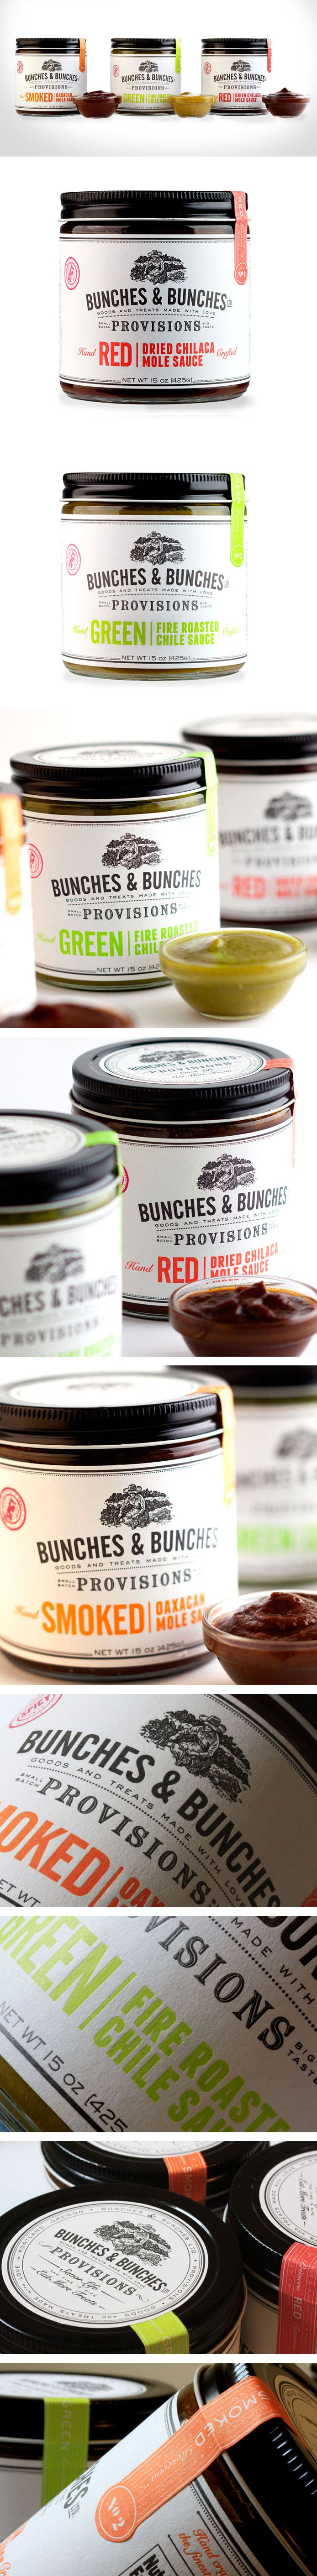 Unique Packaging Design on the Internet, Bunches & Bunches #packagingdesign #packaging